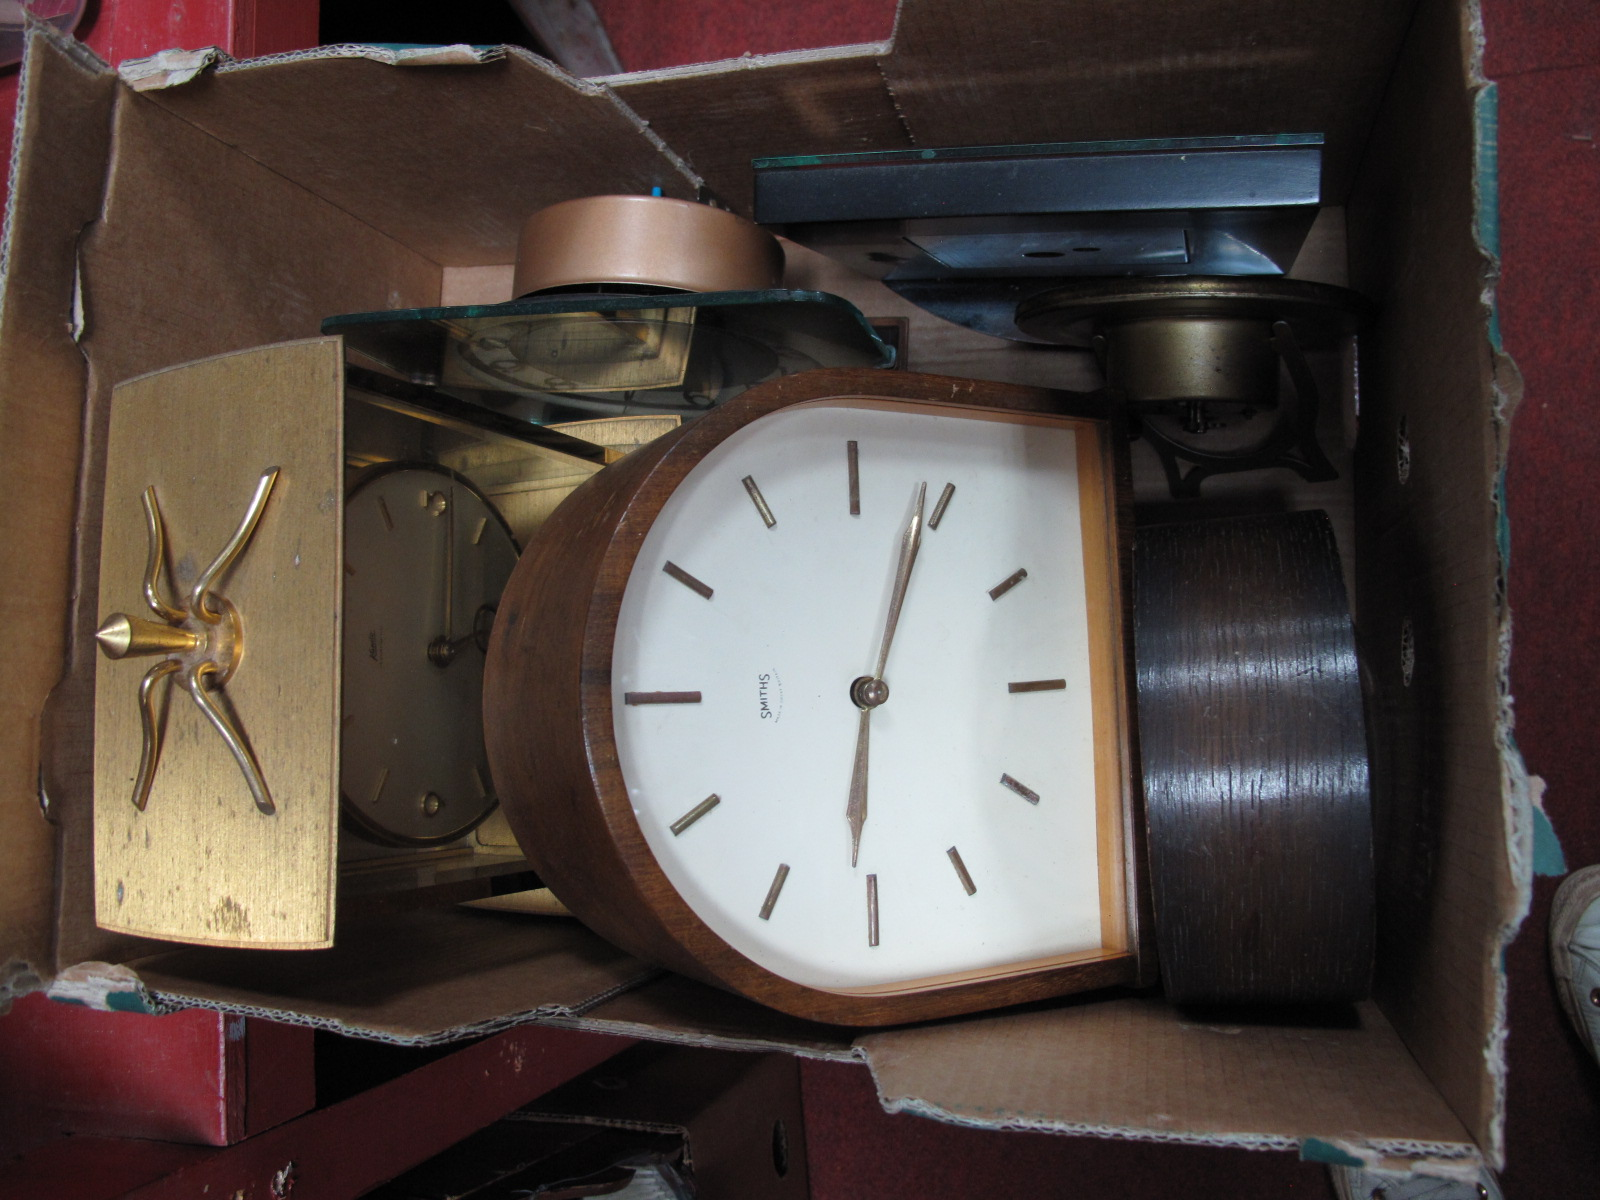 Lot 1042 - A 1960's Smith's Mantel Clock, Kundo (German) wall clock, Smith's Sectric mantel clock, other